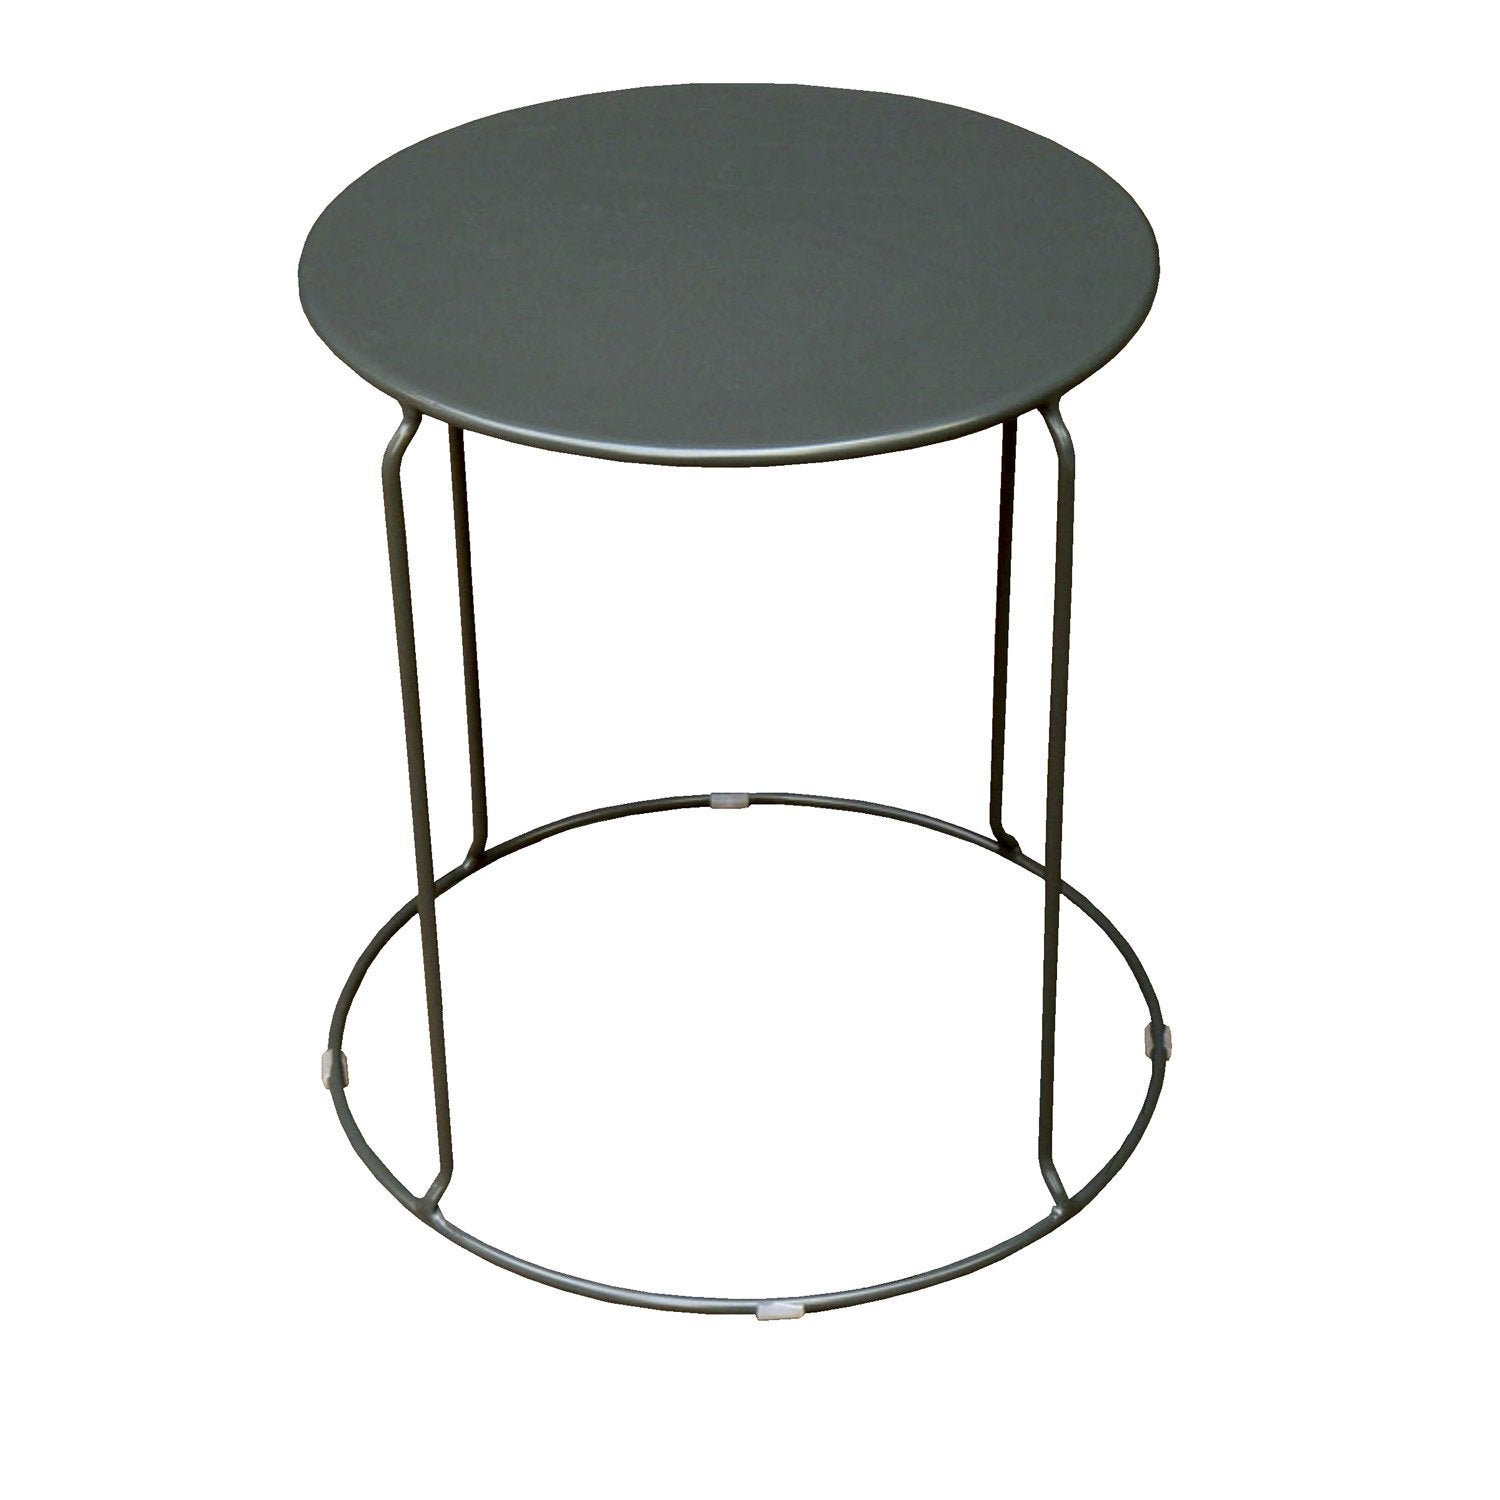 Table basse aix ronde anthracite 2 personnes leroy merlin - Bassin fontaine leroy merlin aixen provence ...